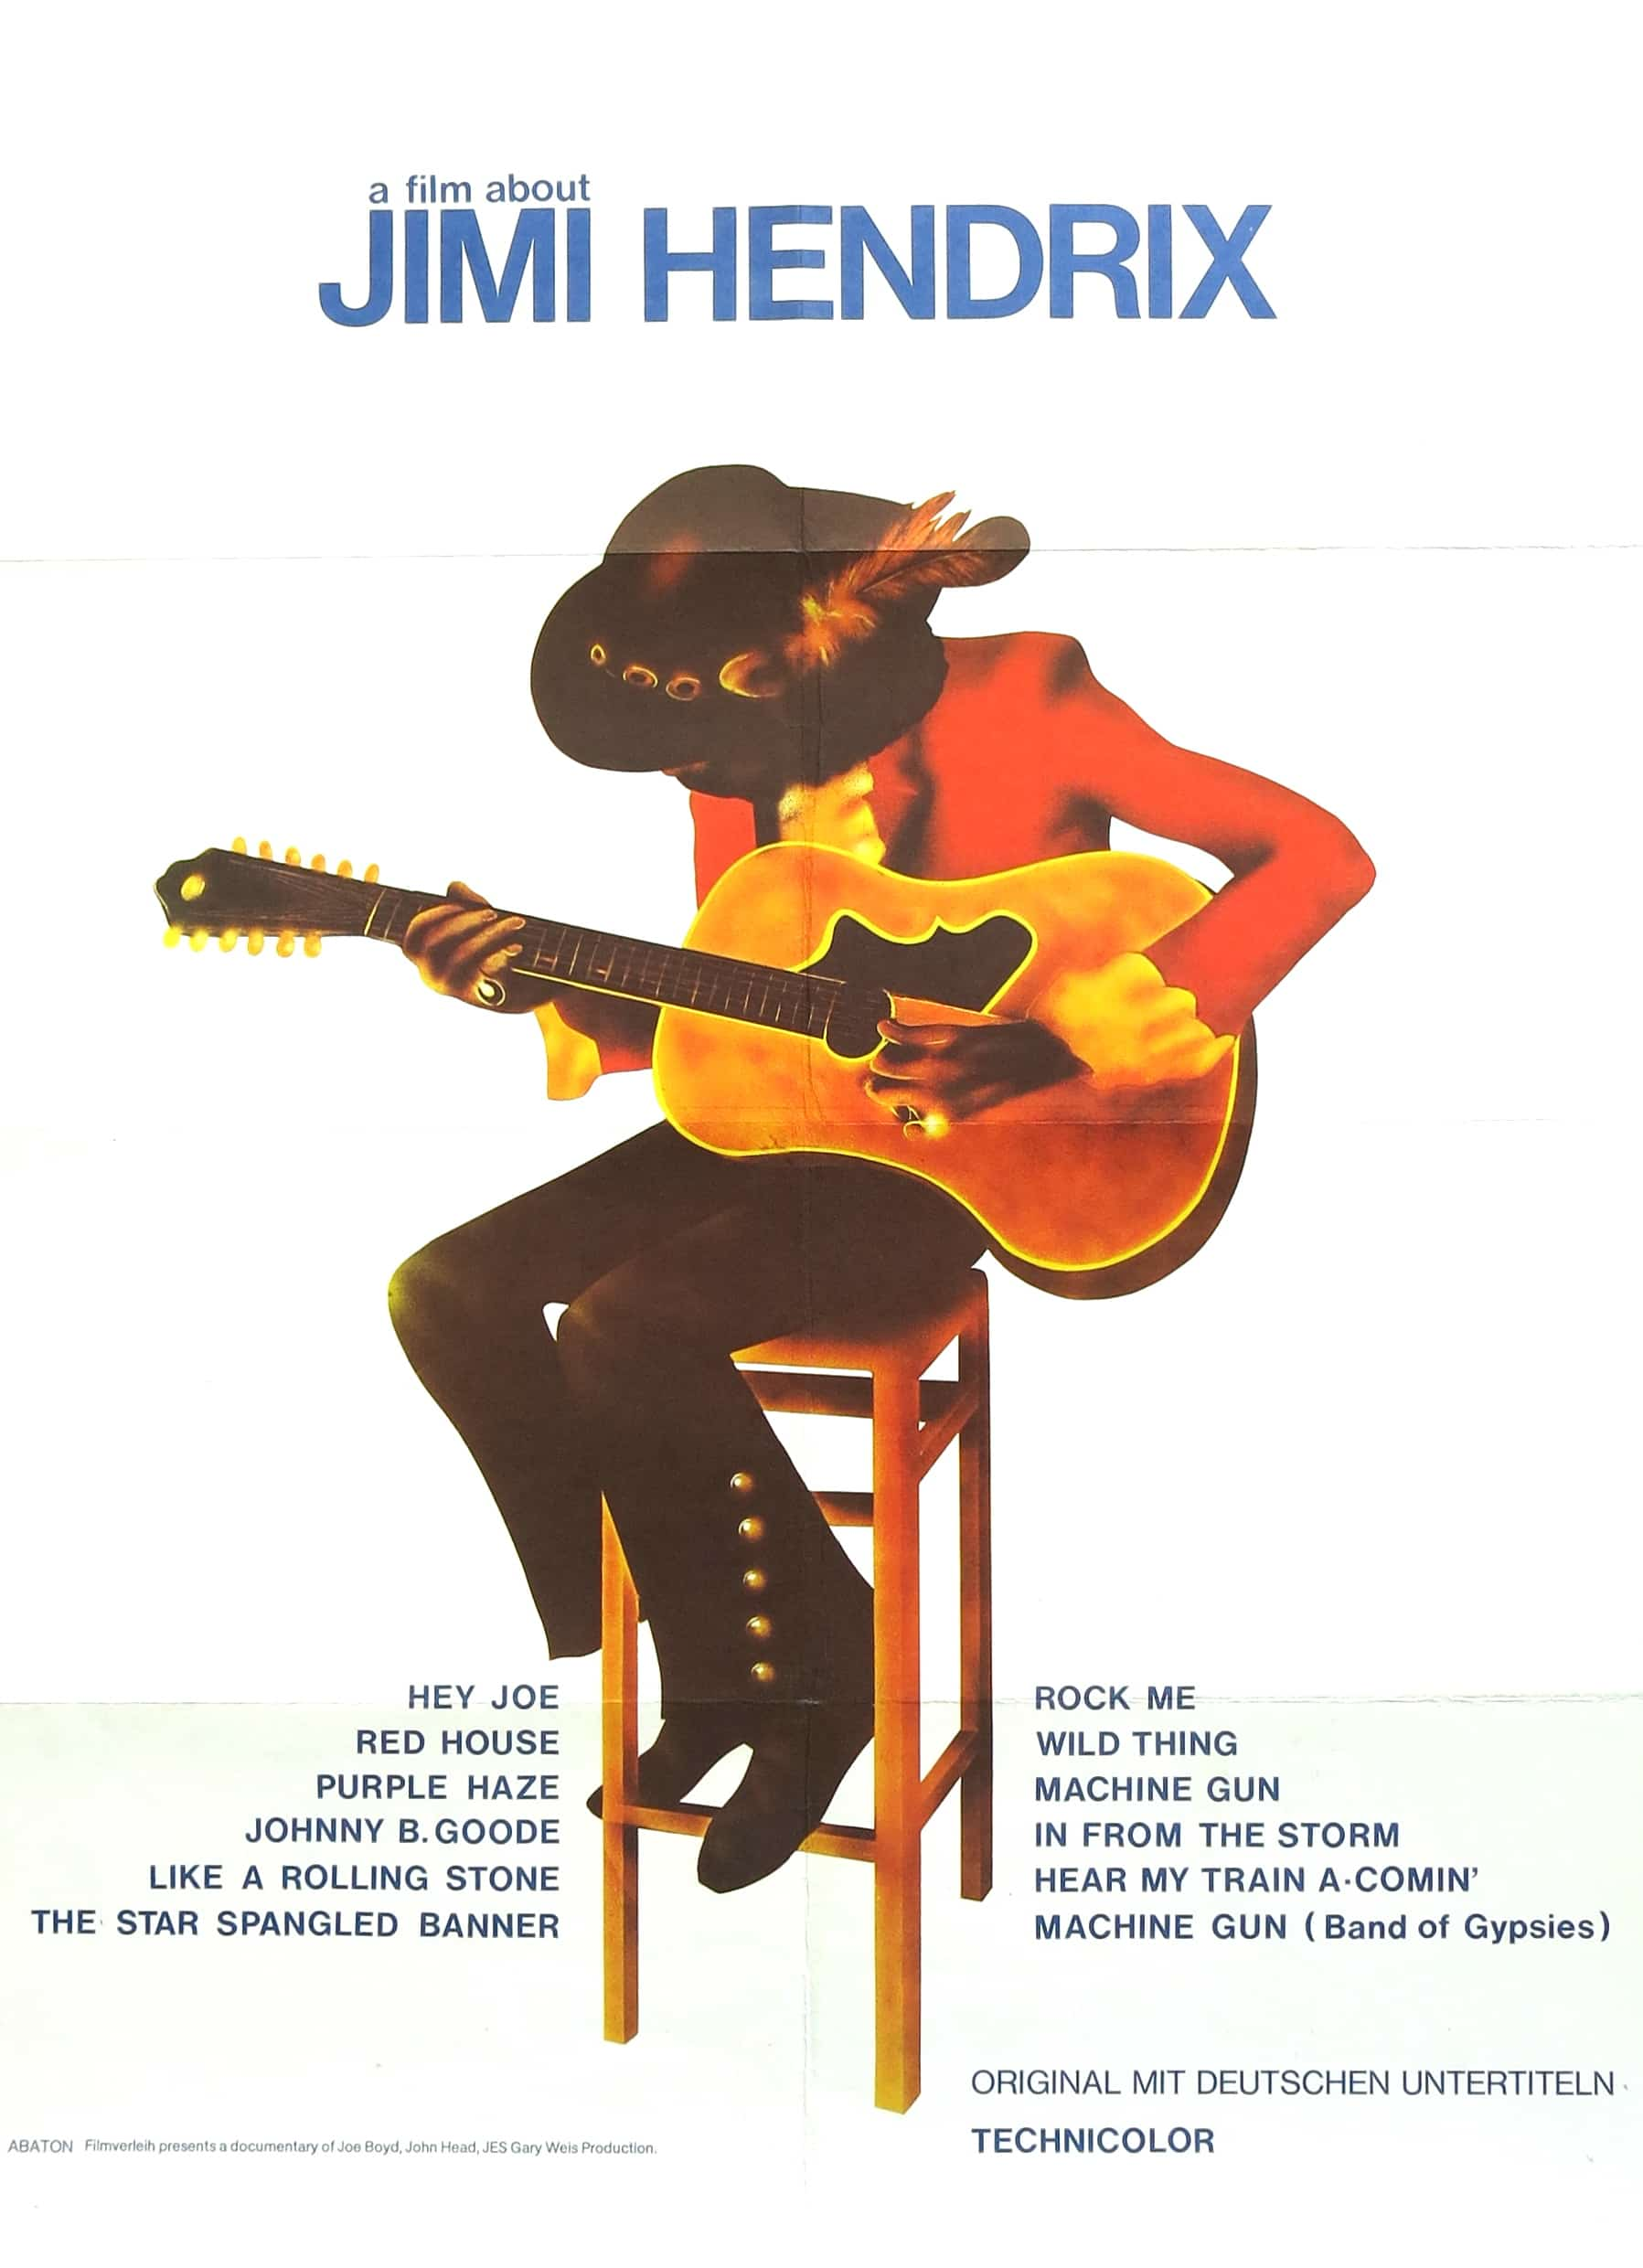 jimi hendrix 1973 poster for a film about jimi hendrix. Black Bedroom Furniture Sets. Home Design Ideas